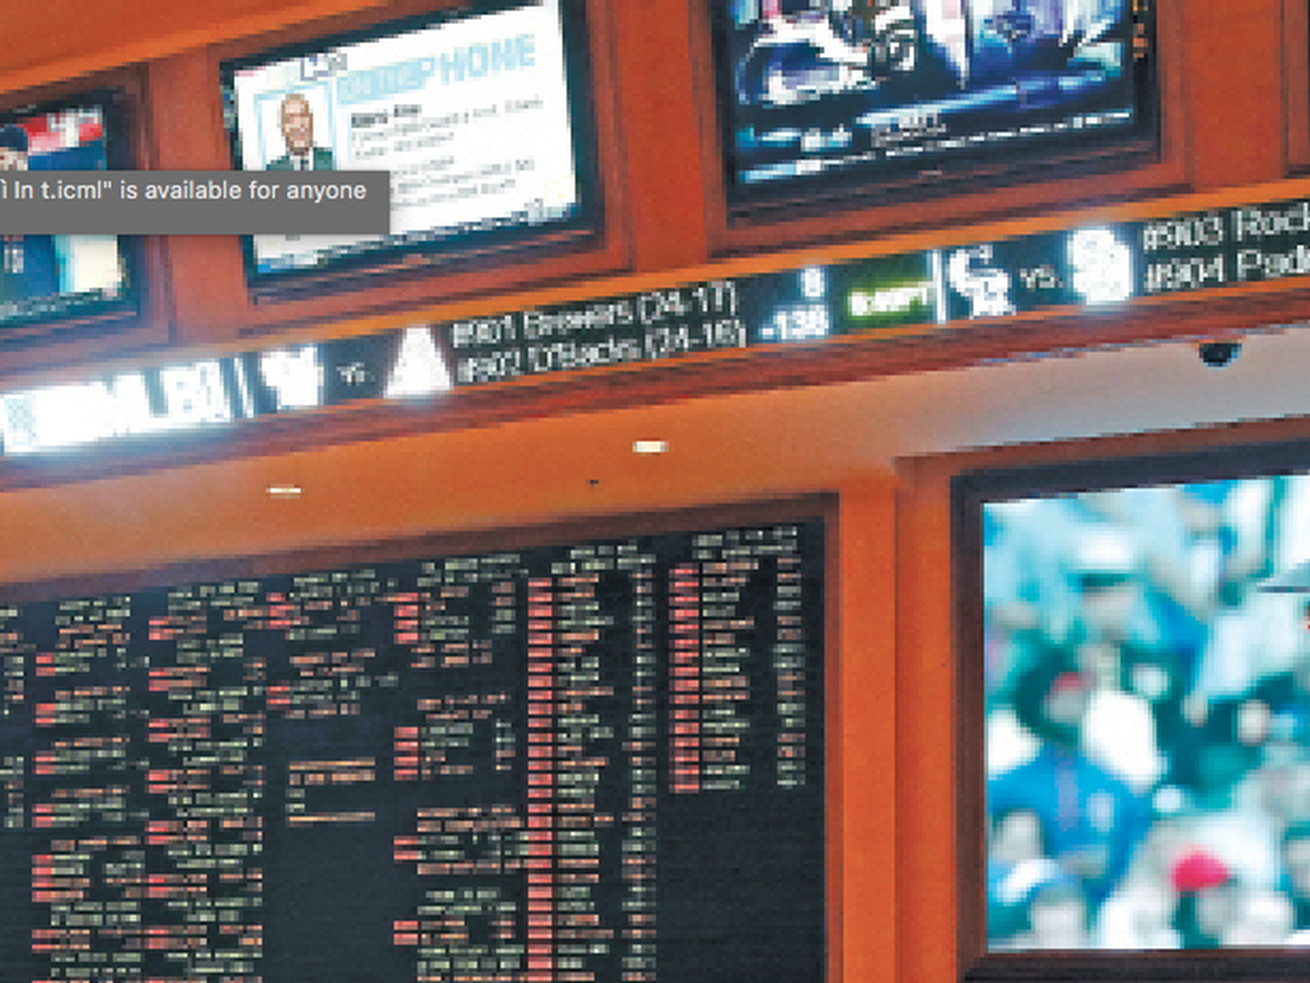 South Point sportsbook